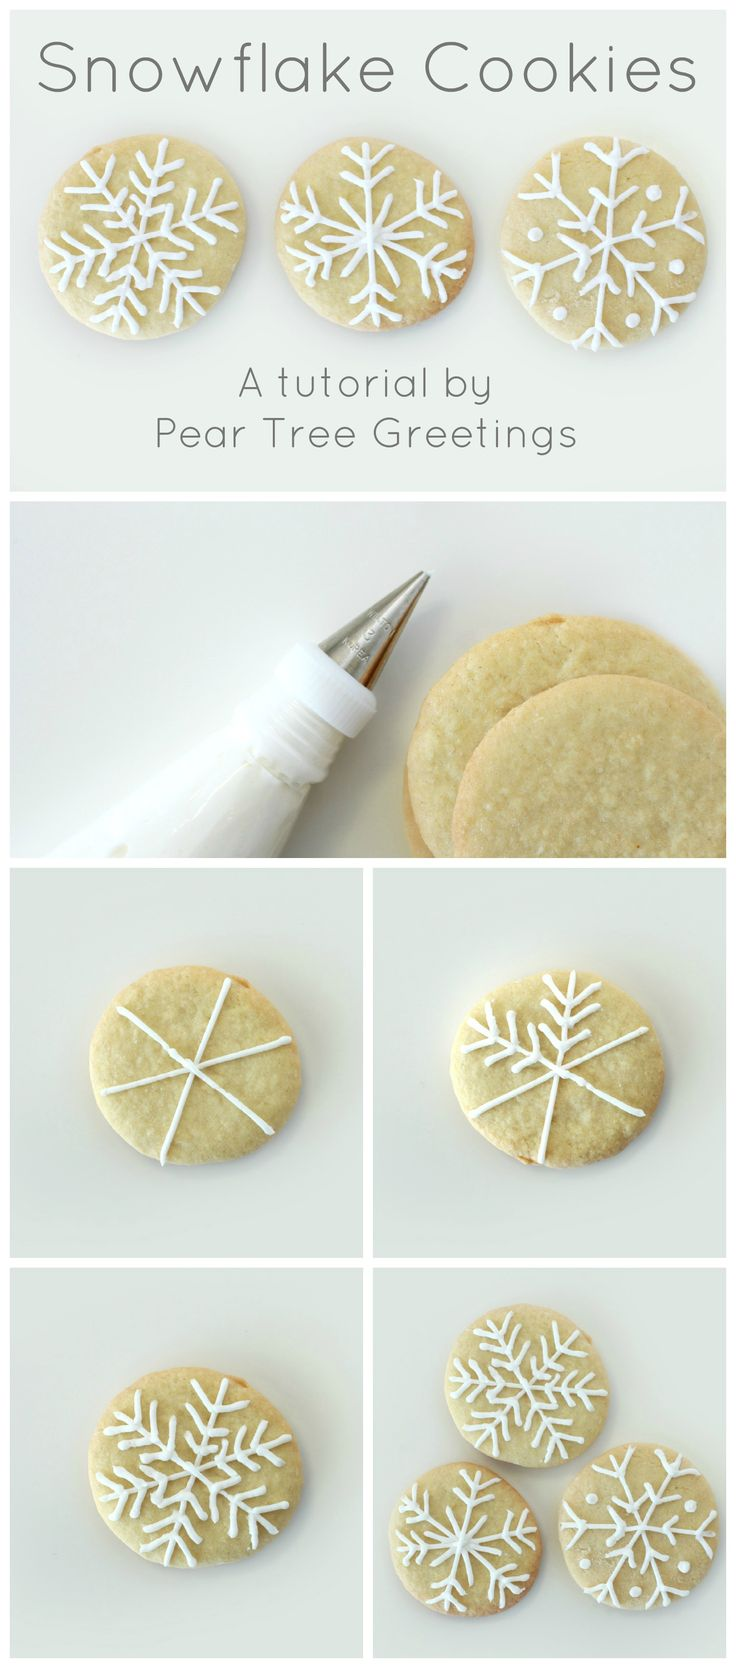 Learn how to make a these snowflake Christmas cookies that are sure to impress your family!